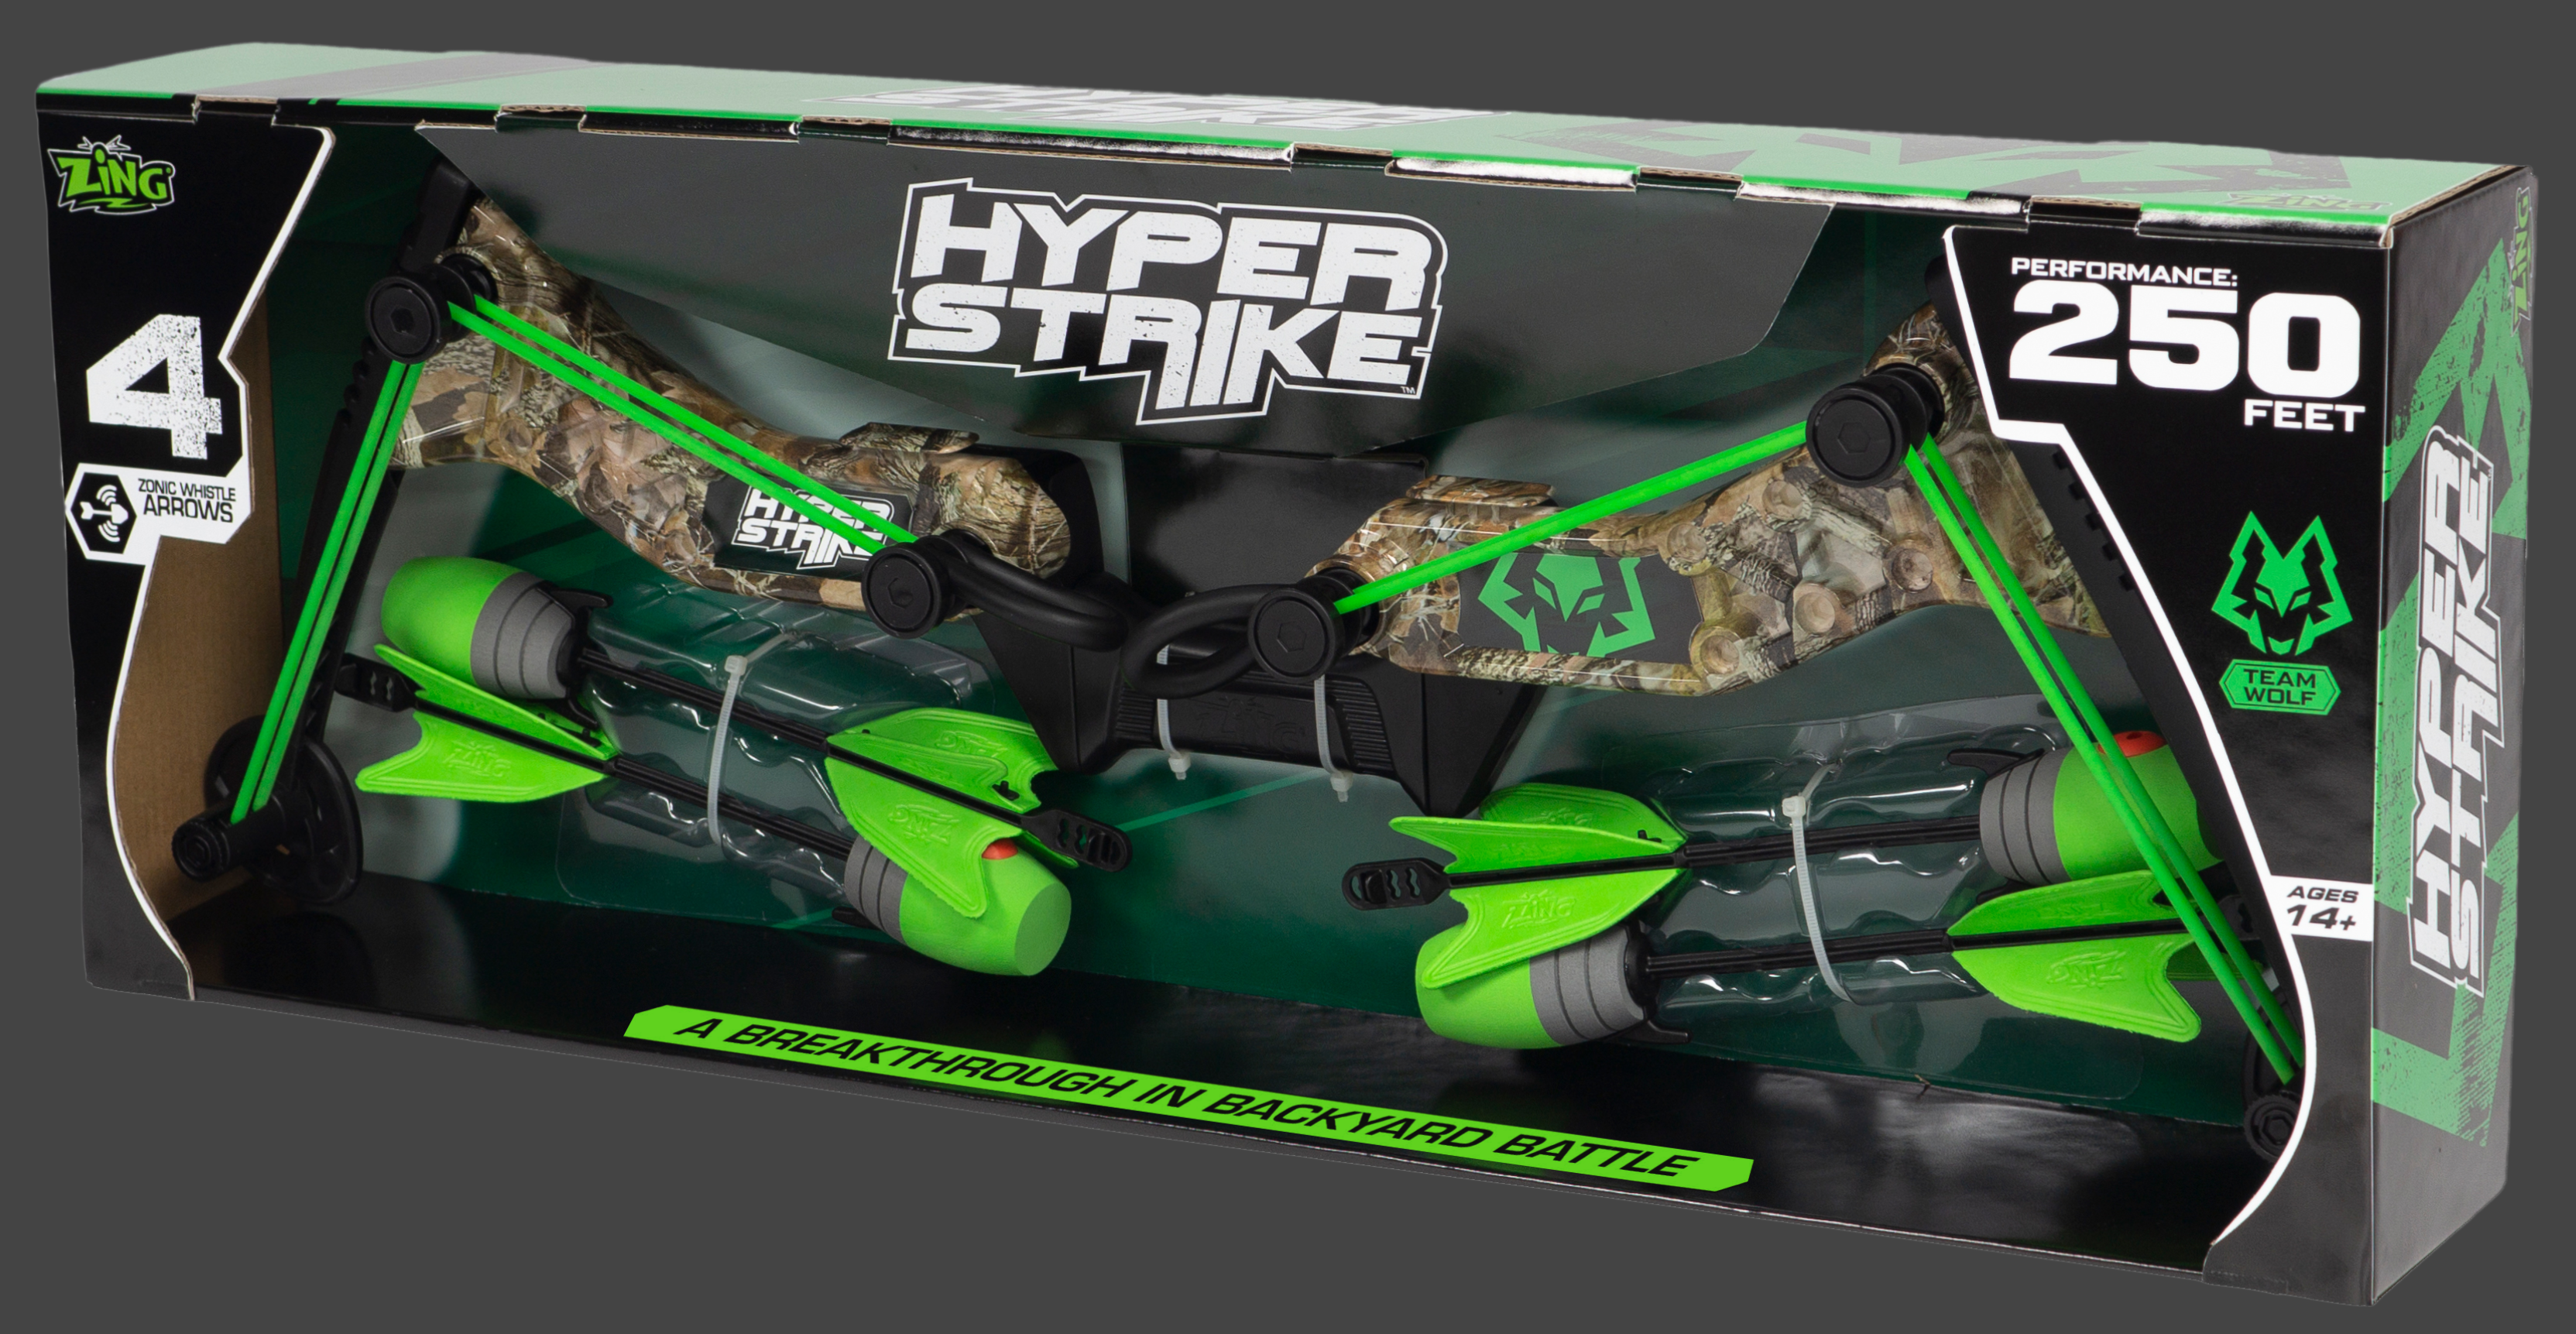 Hyperstrike Bow from Zing Giveaway! @Zing_Toys #ZingToys